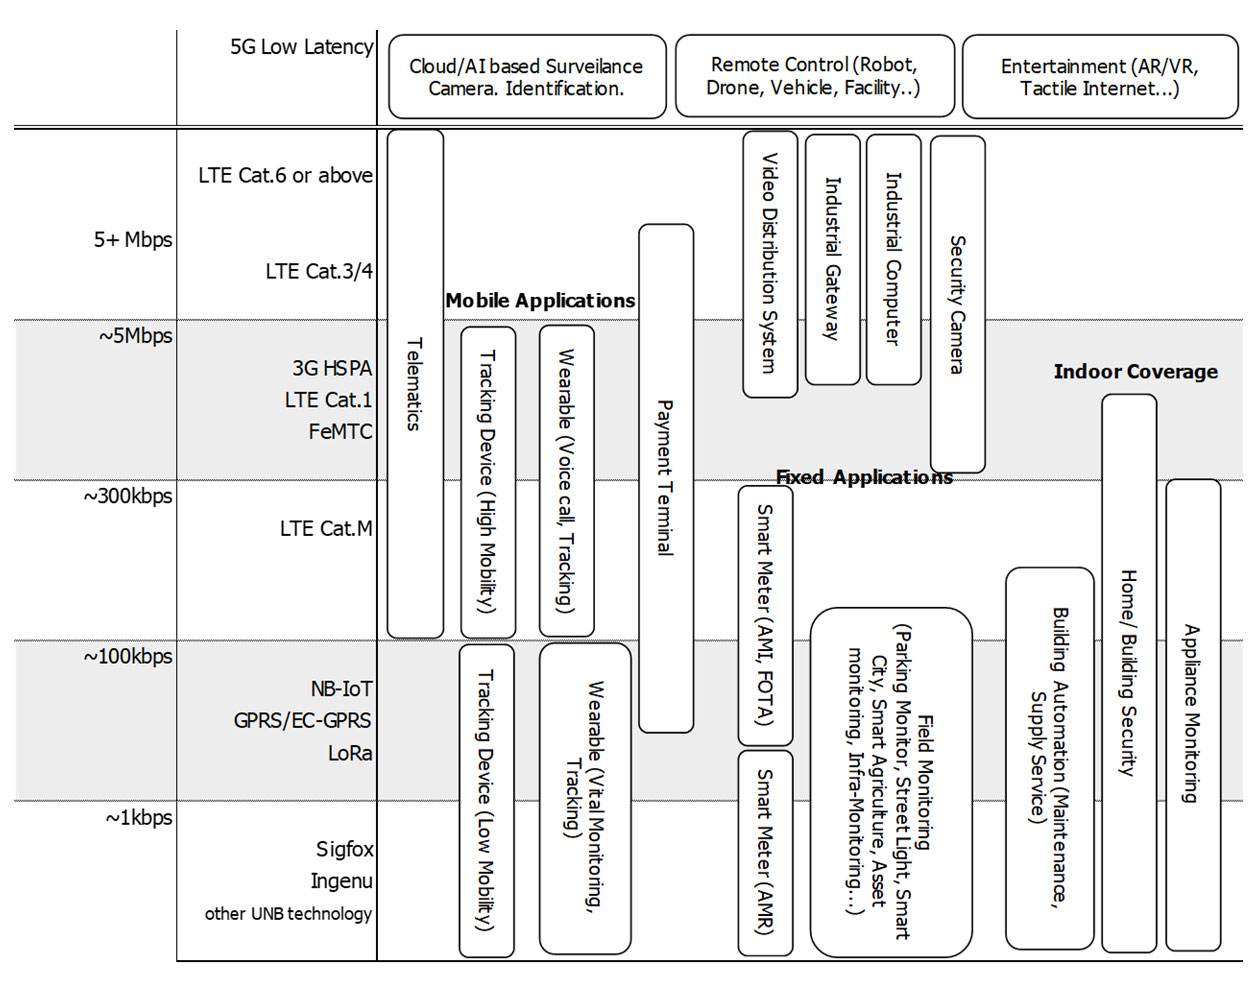 Chart : Matrix of Cellular/LPWA protocol and Application